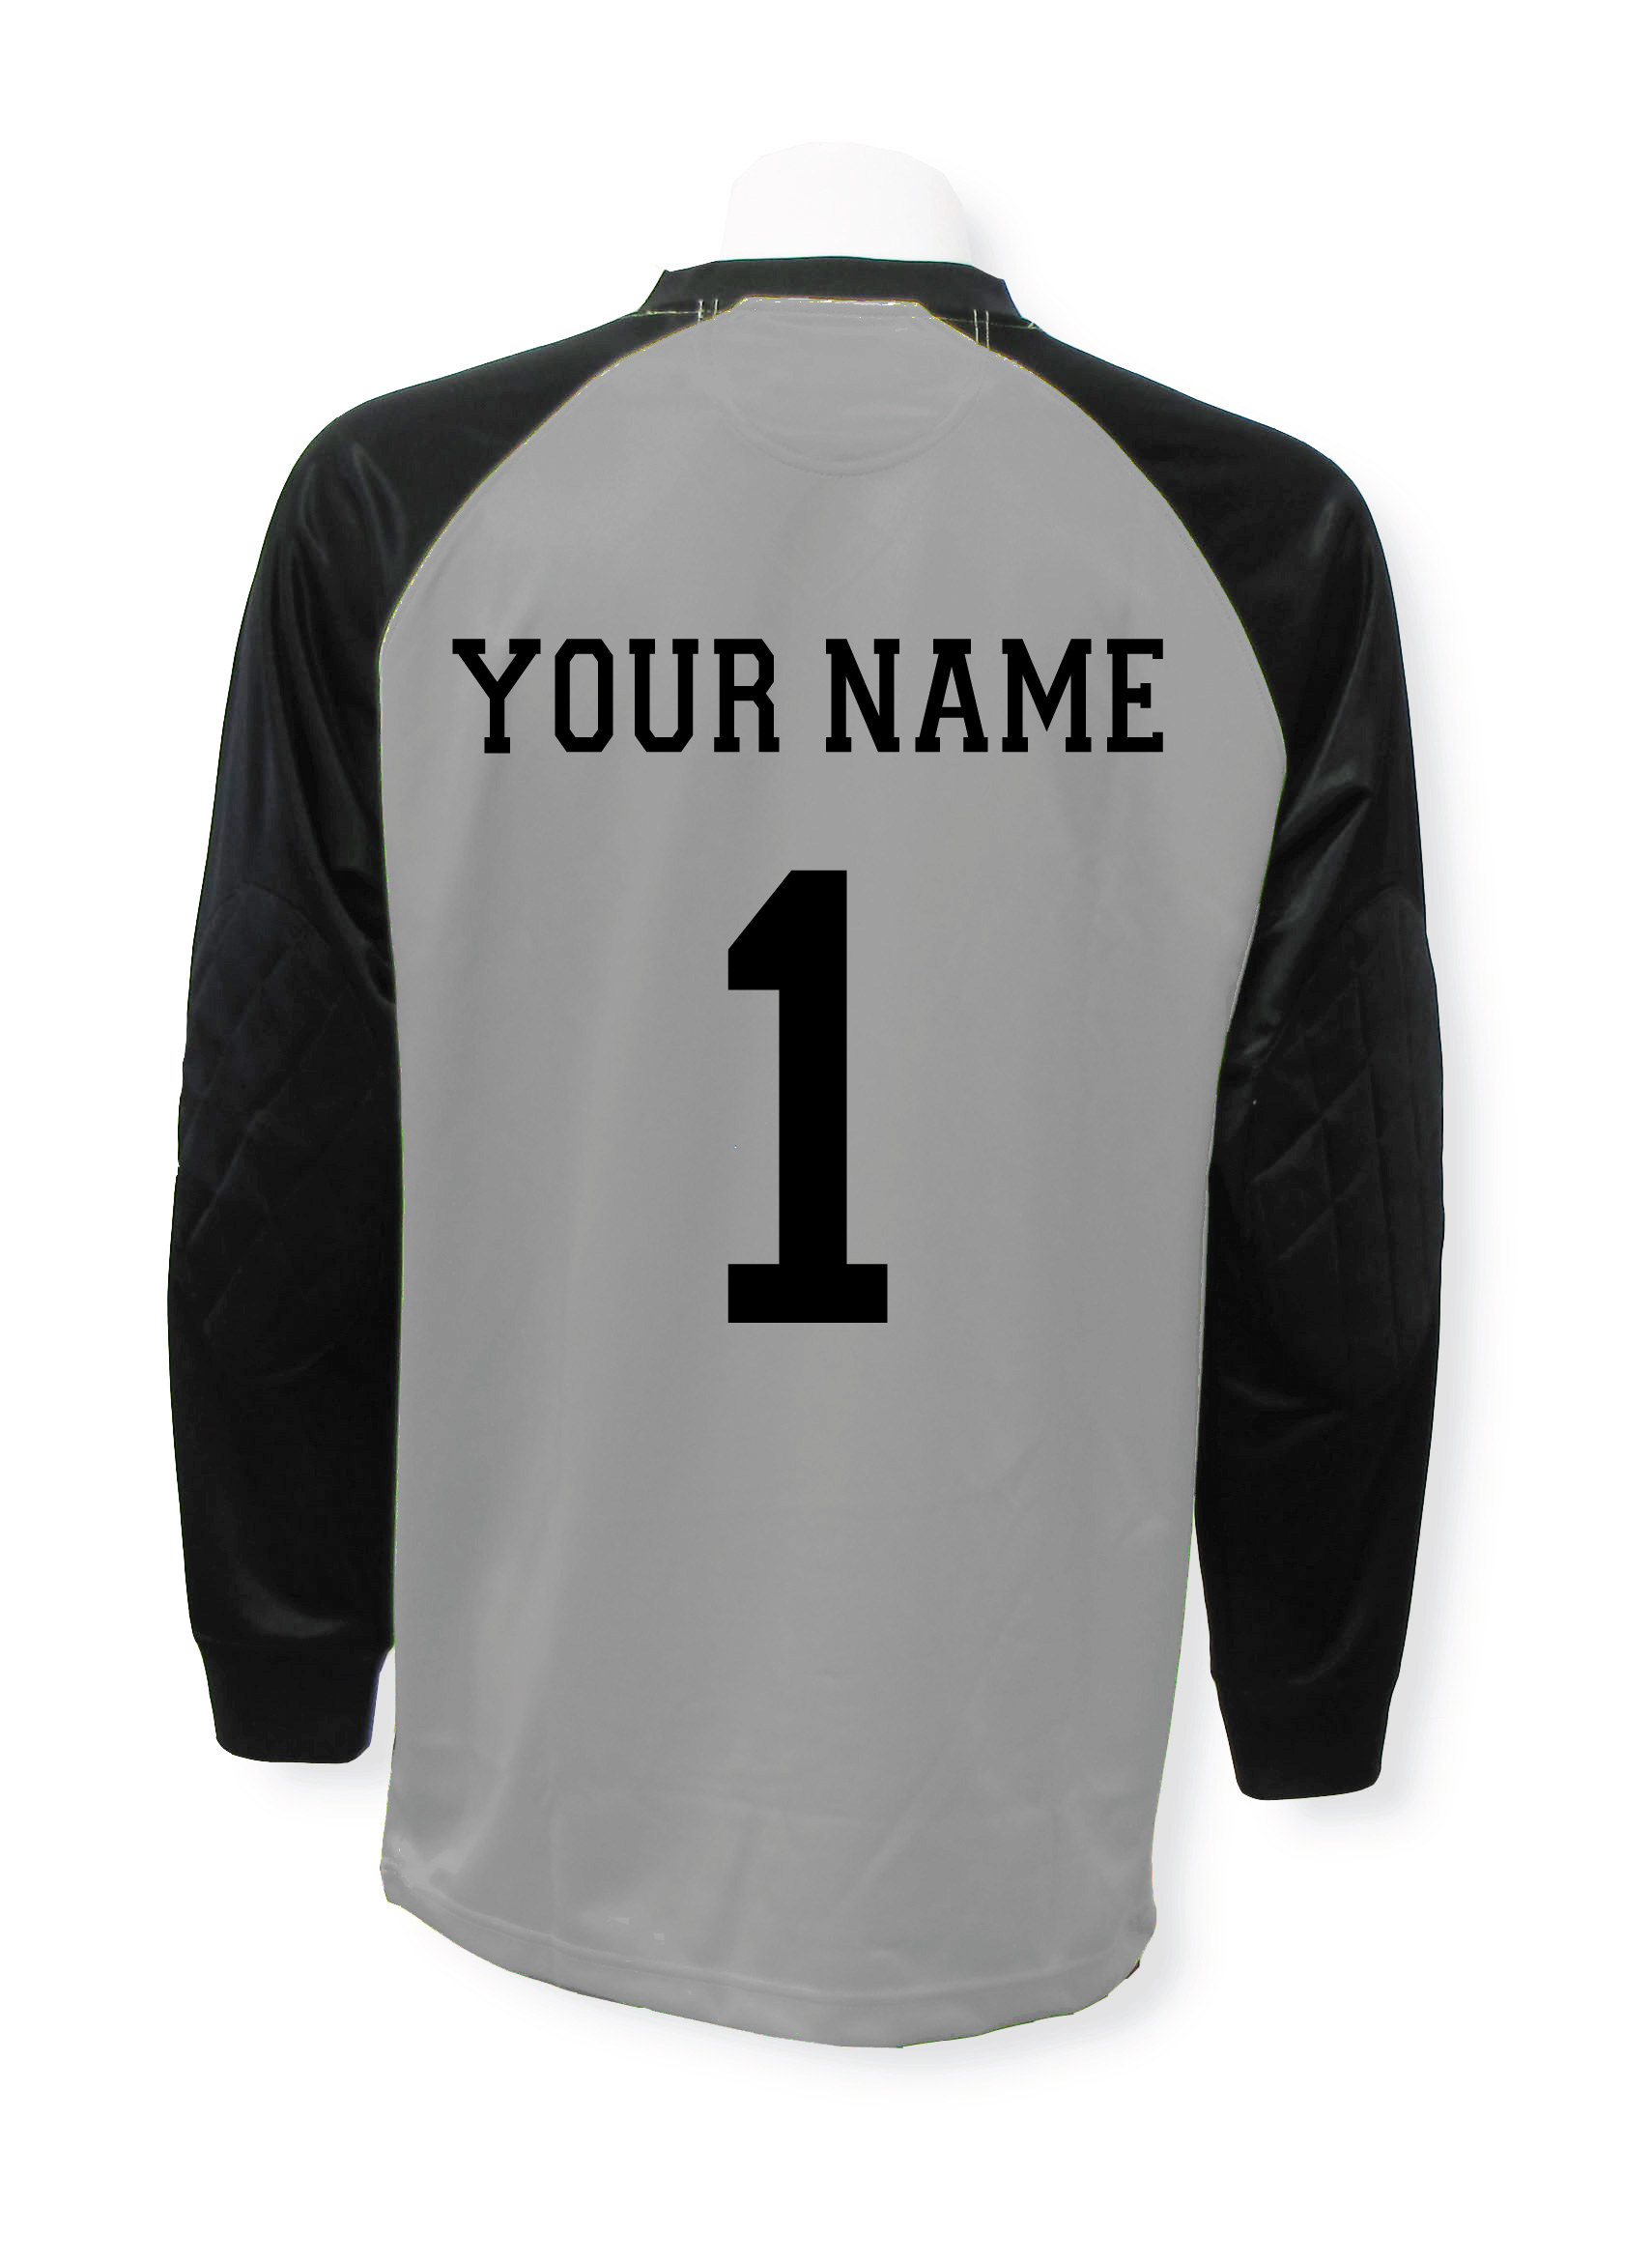 Personalized soccer keeper jersey with name and number by Code Four Athletics